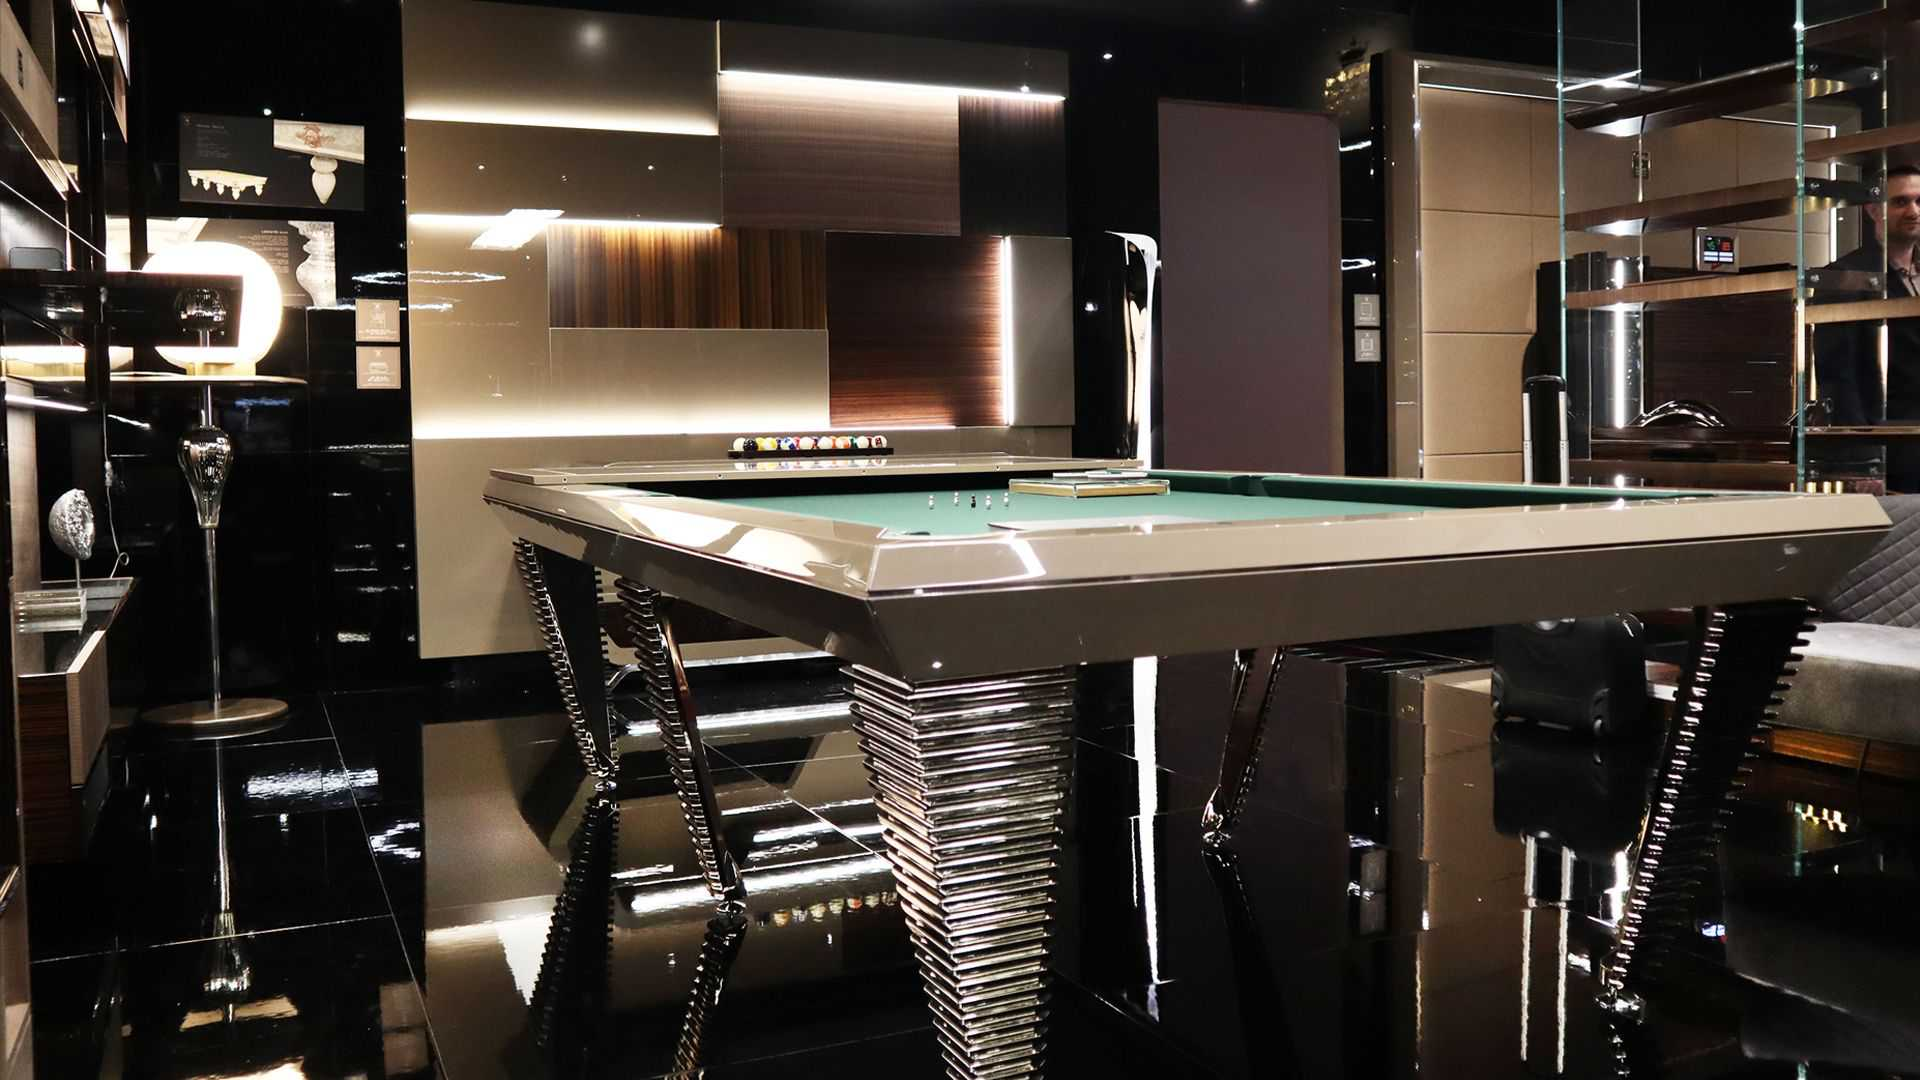 Pyramid Billiard Pool Table 6